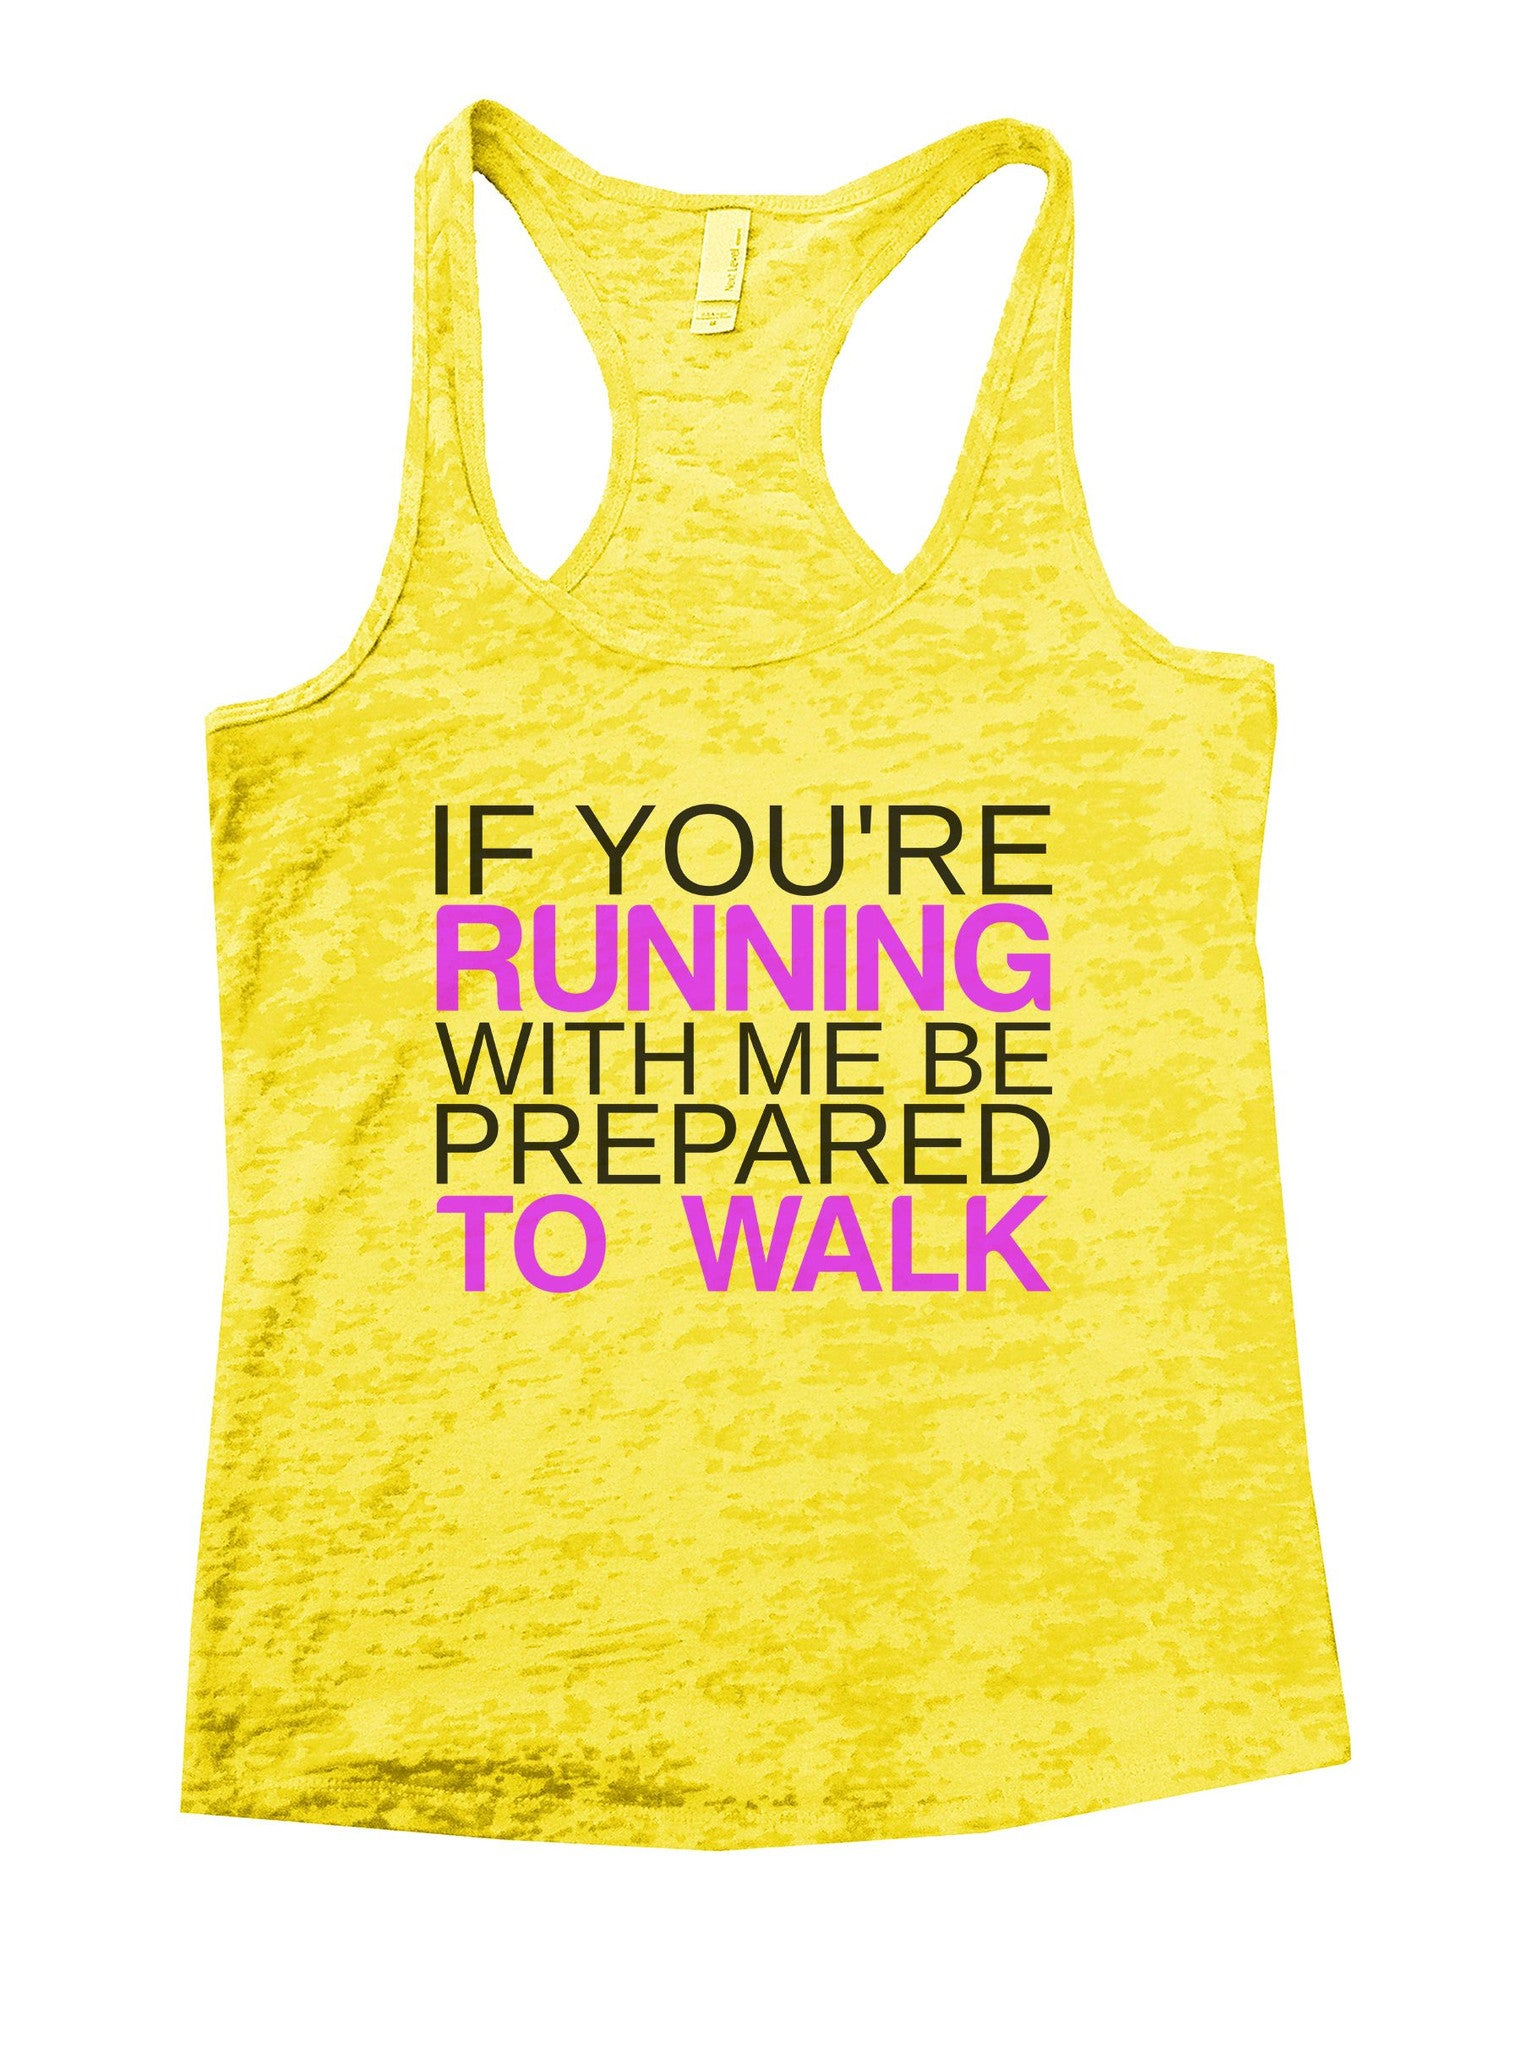 If You're Running With Me Be Prepared To Walk Burnout Tank Top By BurnoutTankTops.com - 858 - Funny Shirts Tank Tops Burnouts and Triblends  - 7